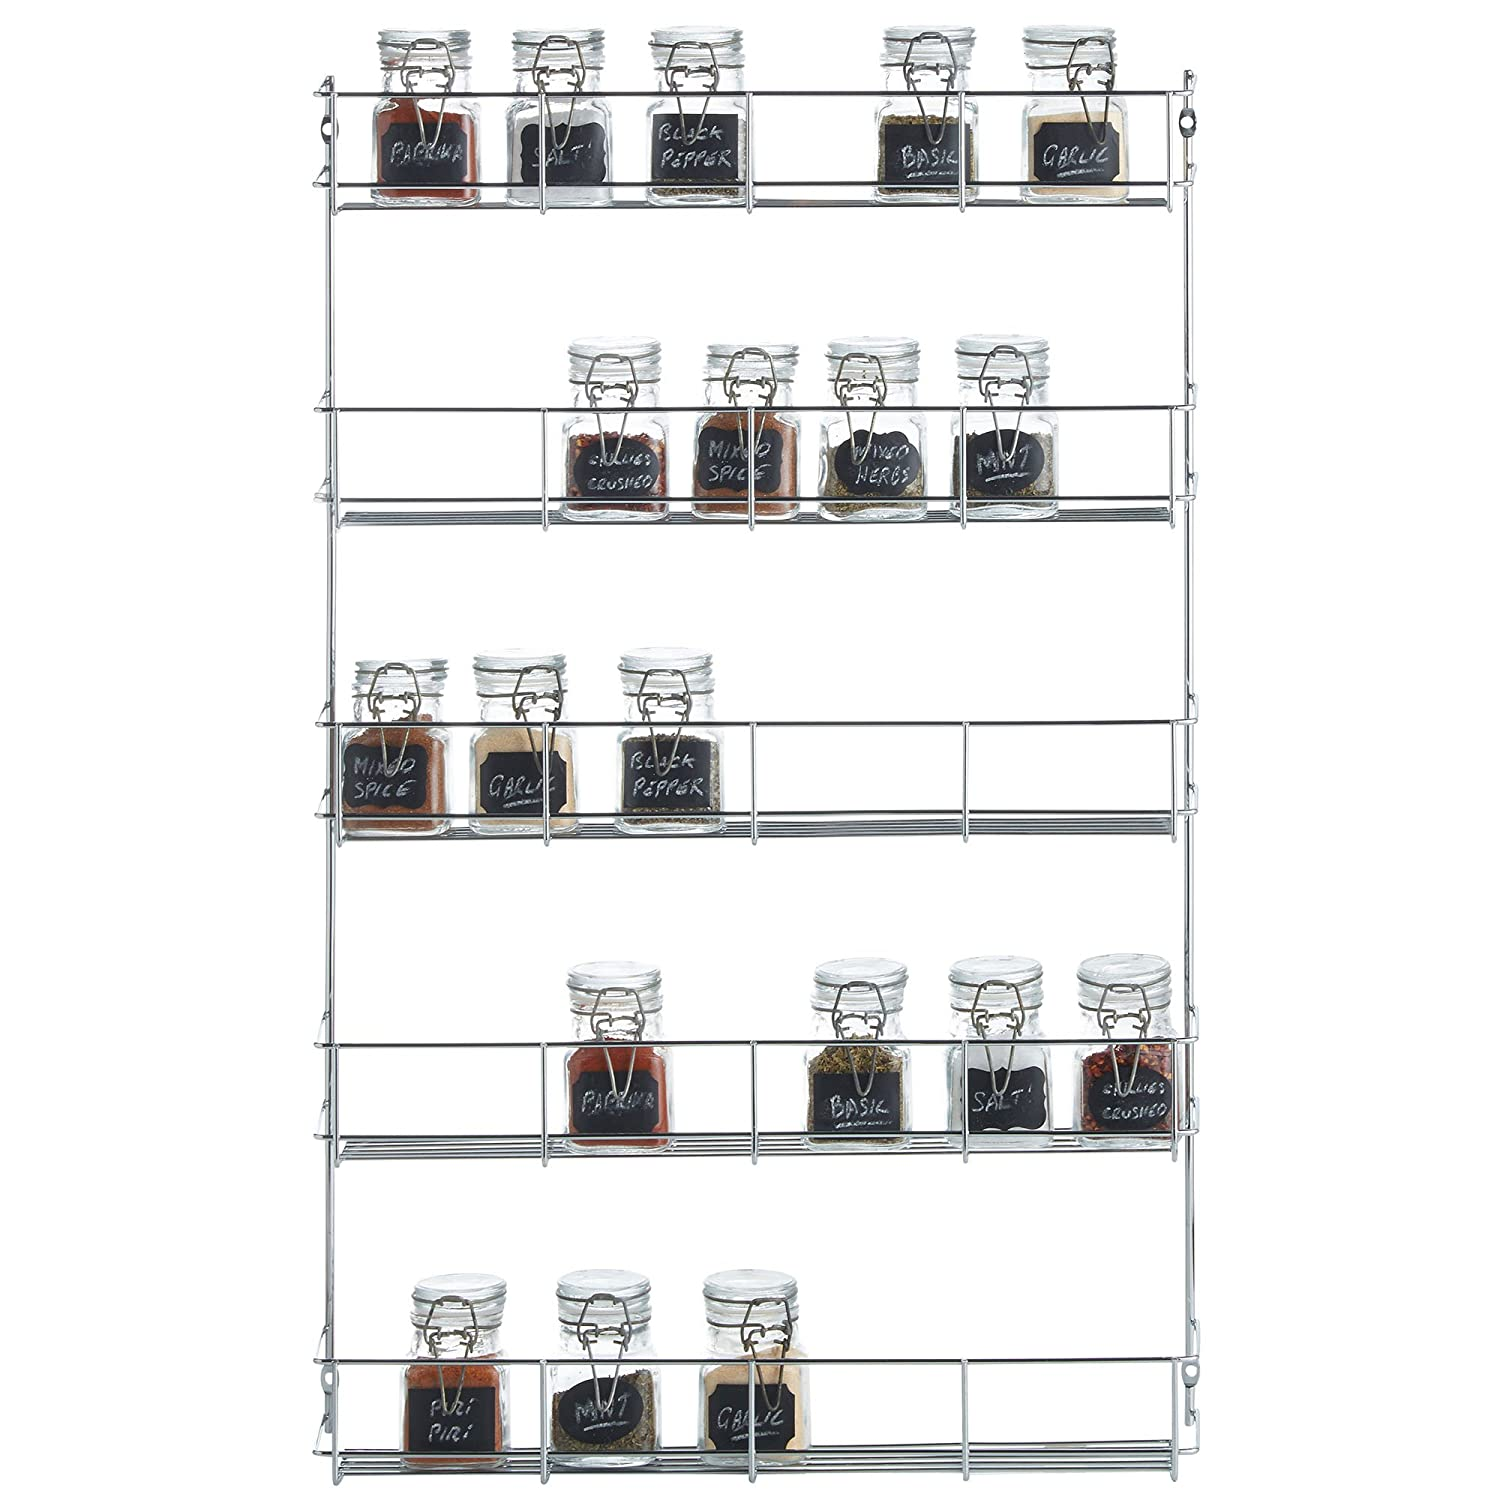 Exceptional VonShef   5 Tier Spice Rack Chrome Plated (Easy Fix) For Herbs And Spices